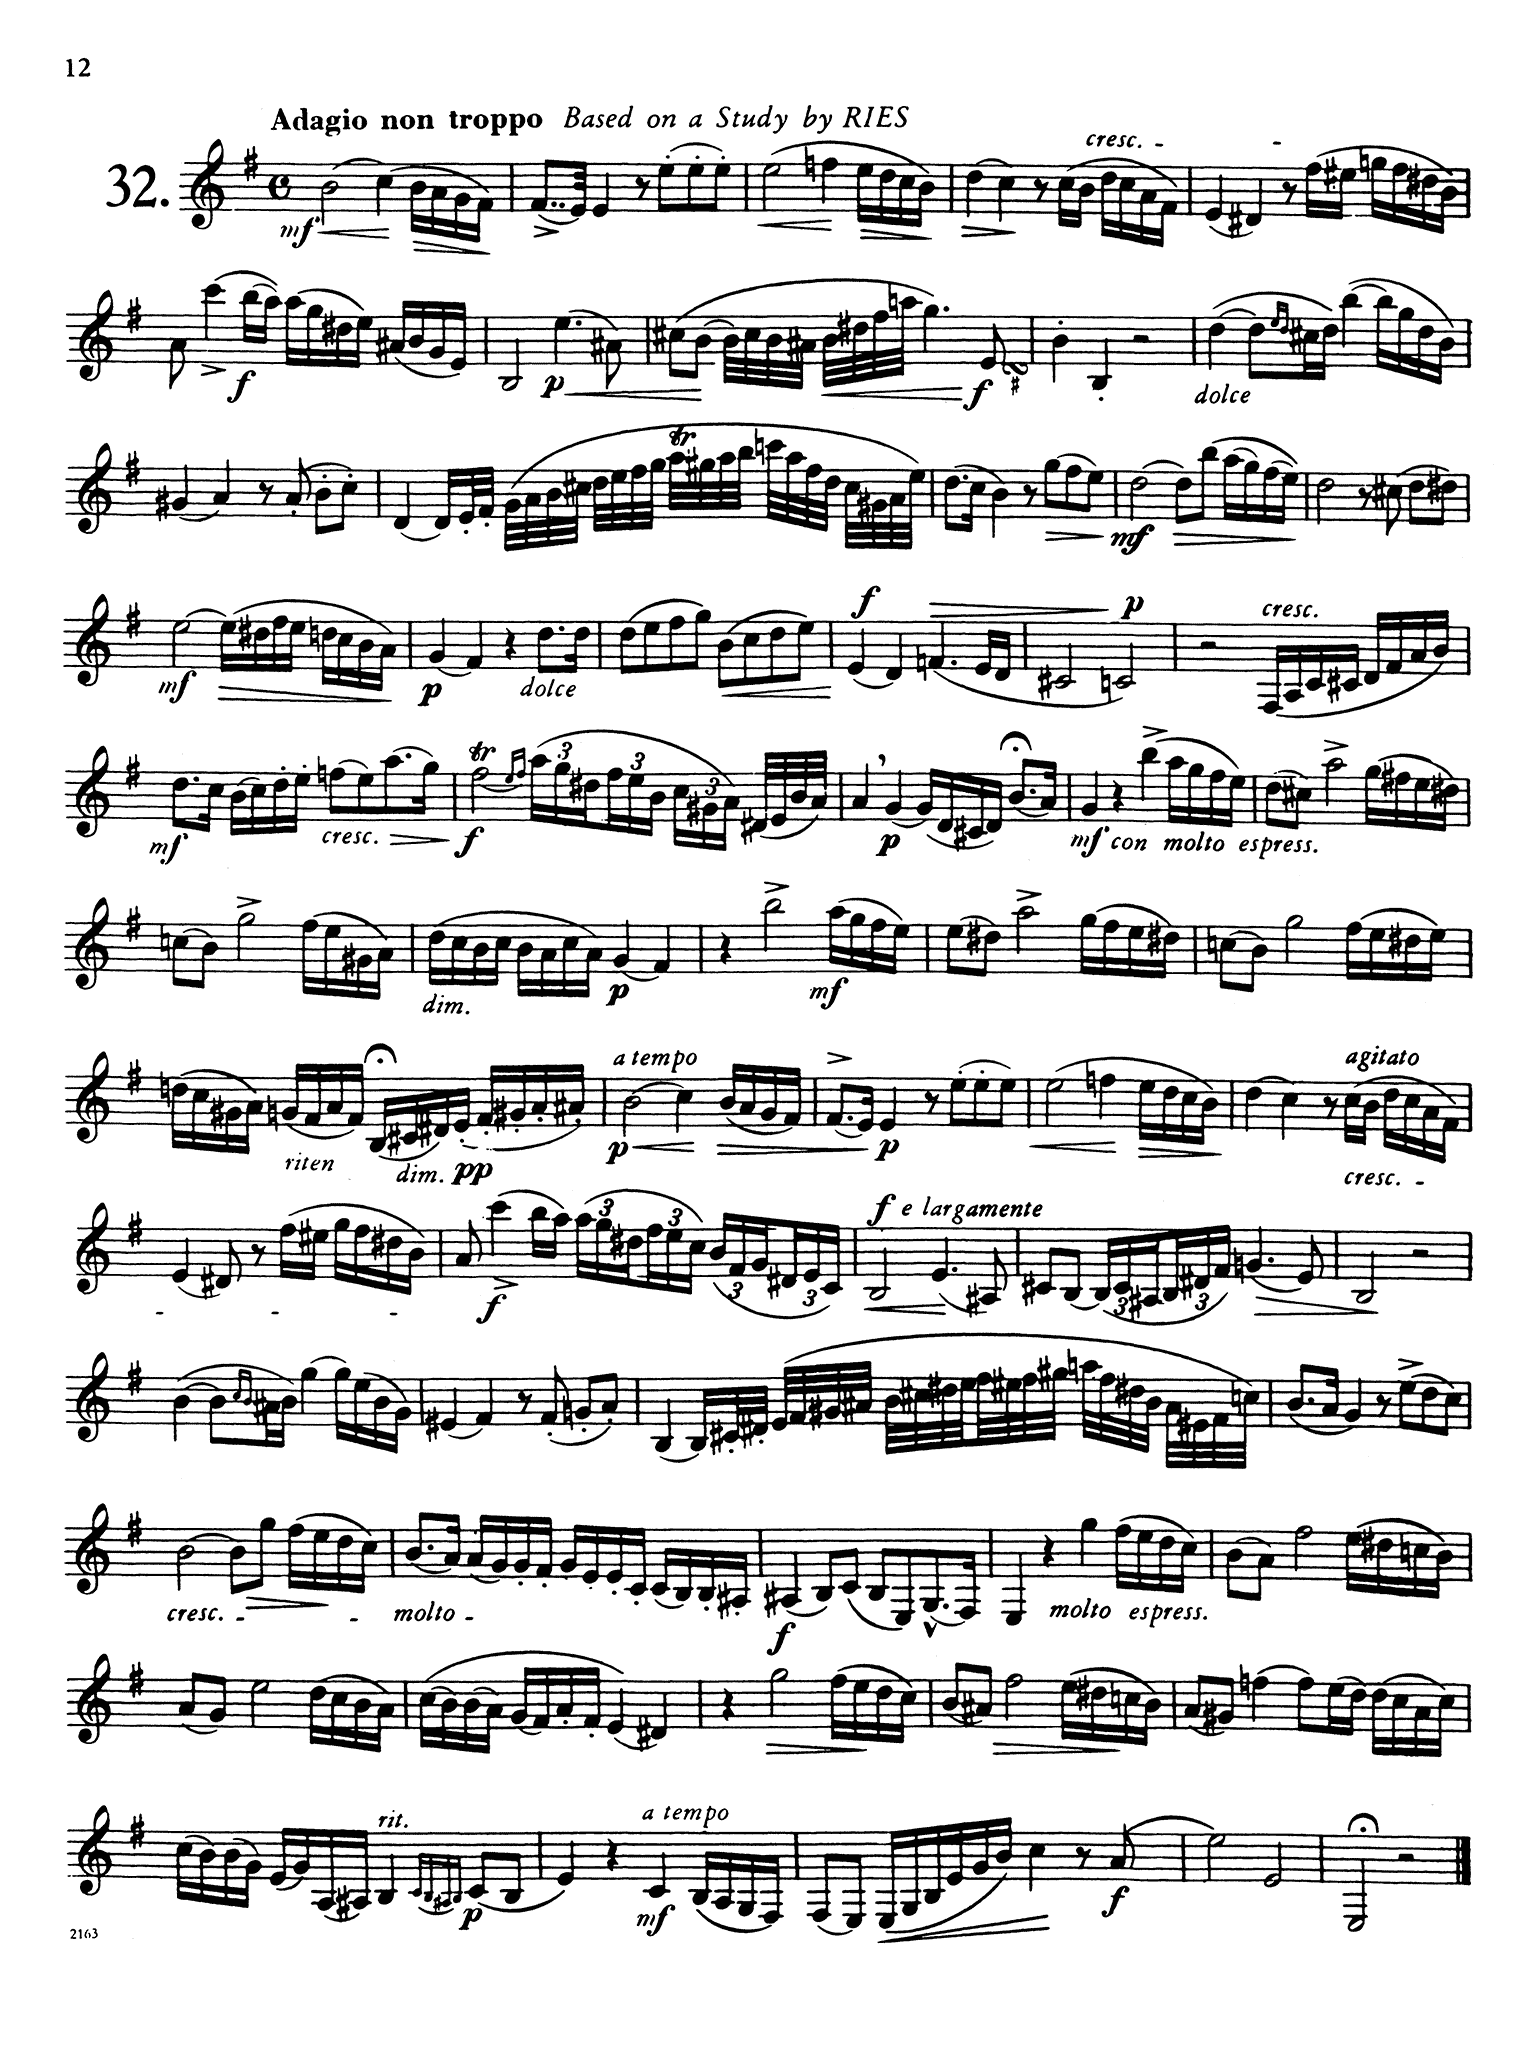 40 Études for Clarinet, Book 2 of 2 Page 12